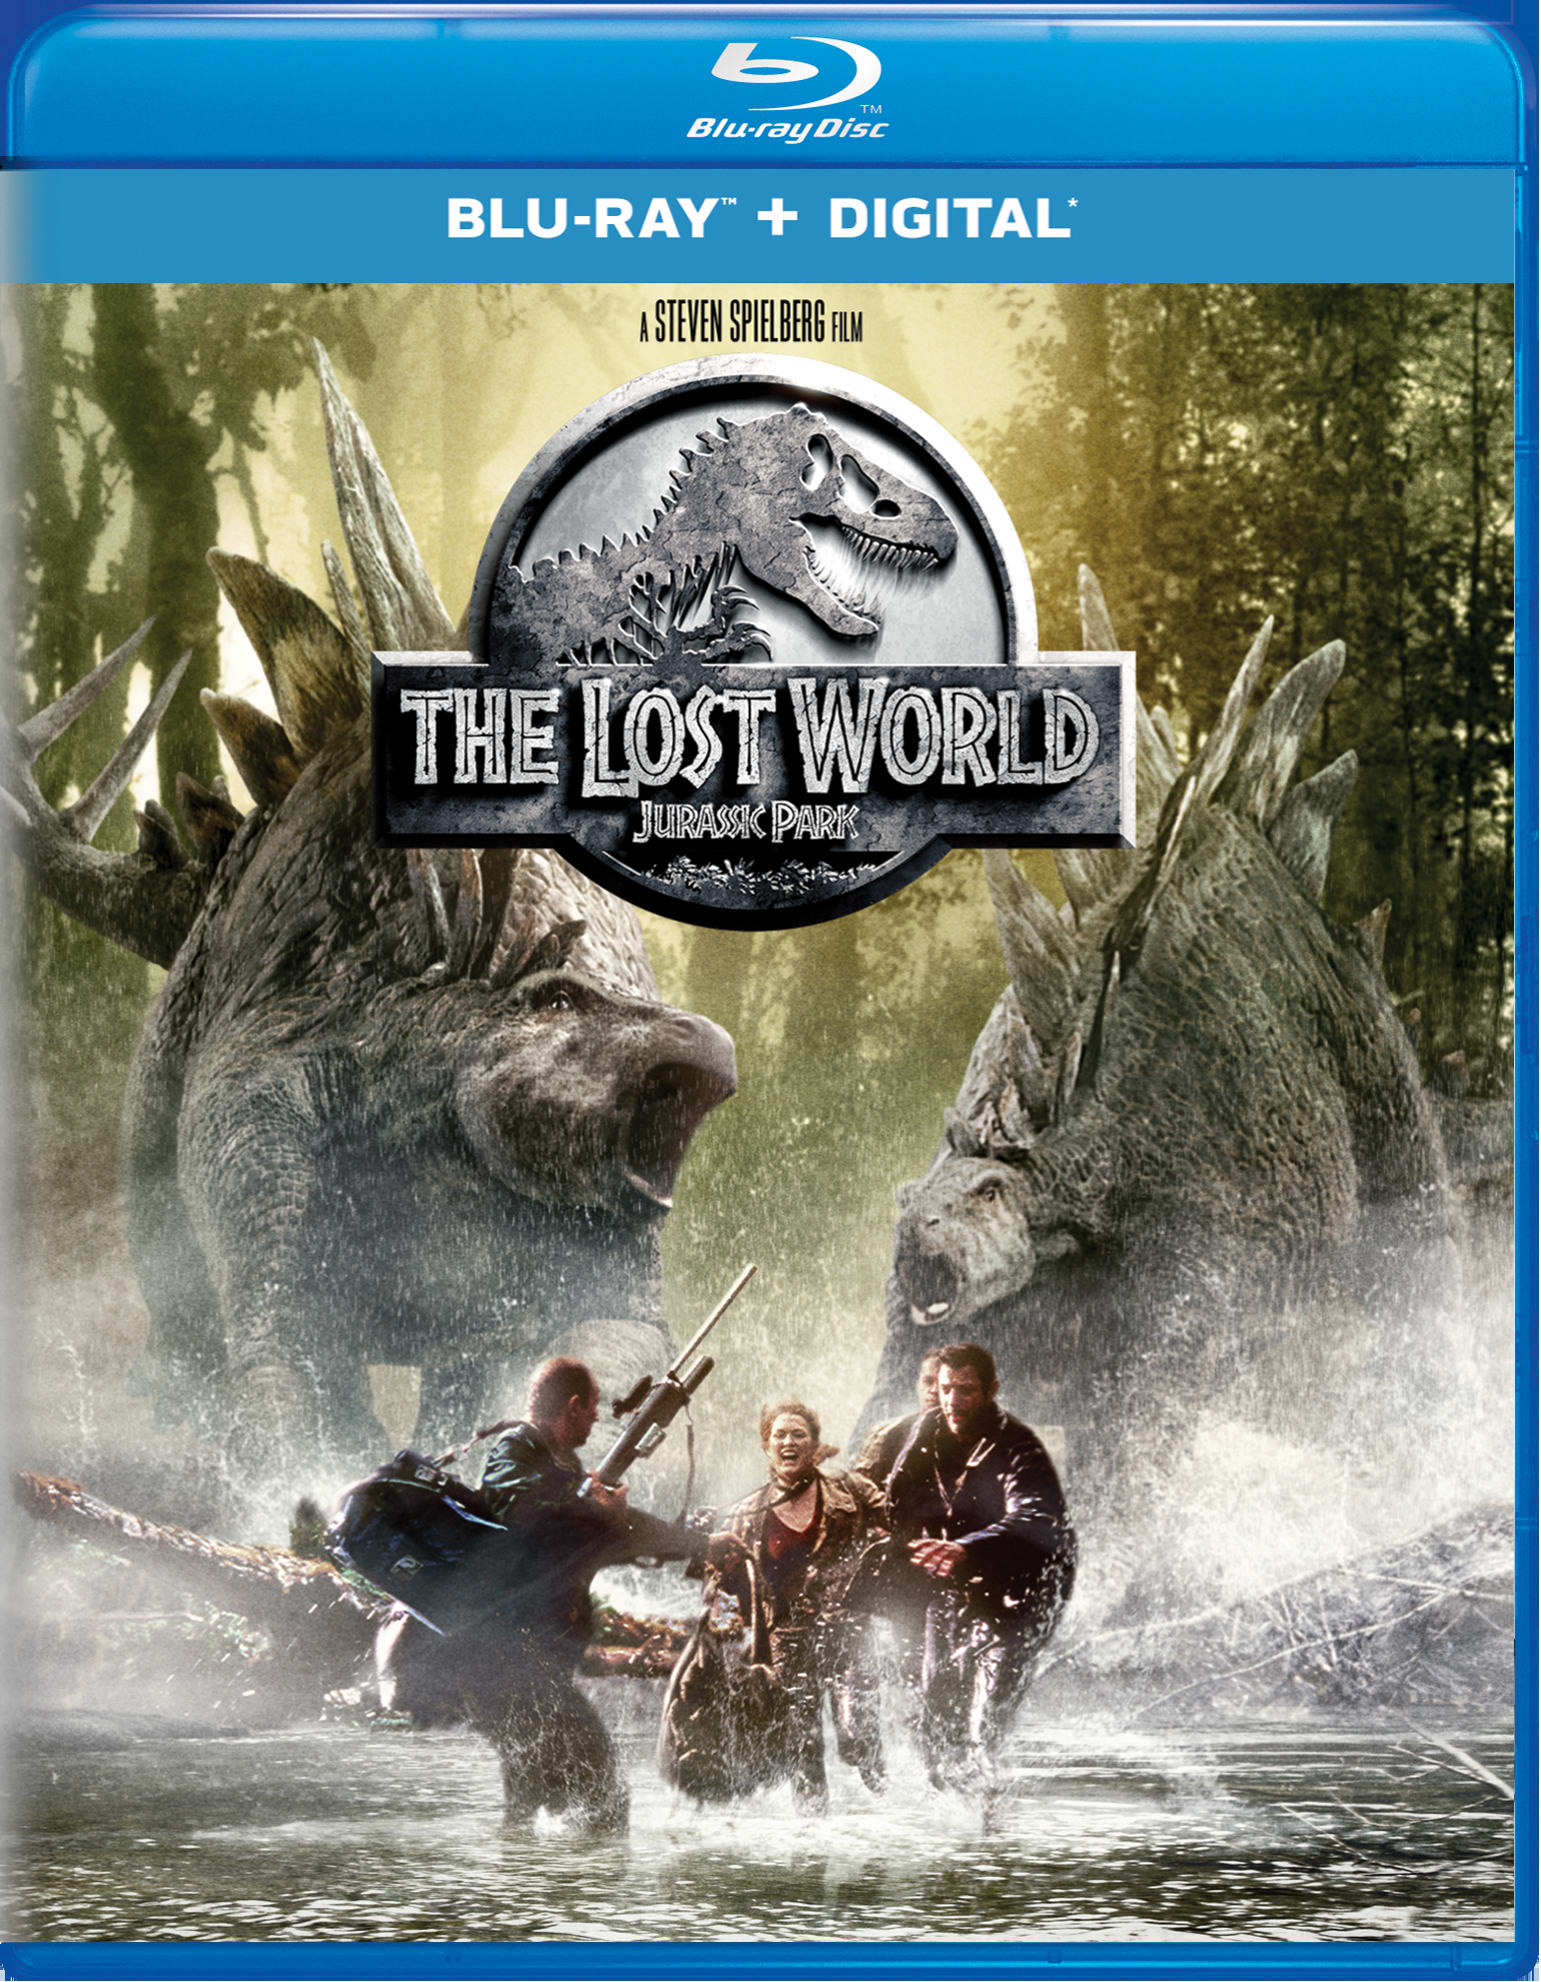 The Lost World - Jurassic Park 2 [Blu-ray]